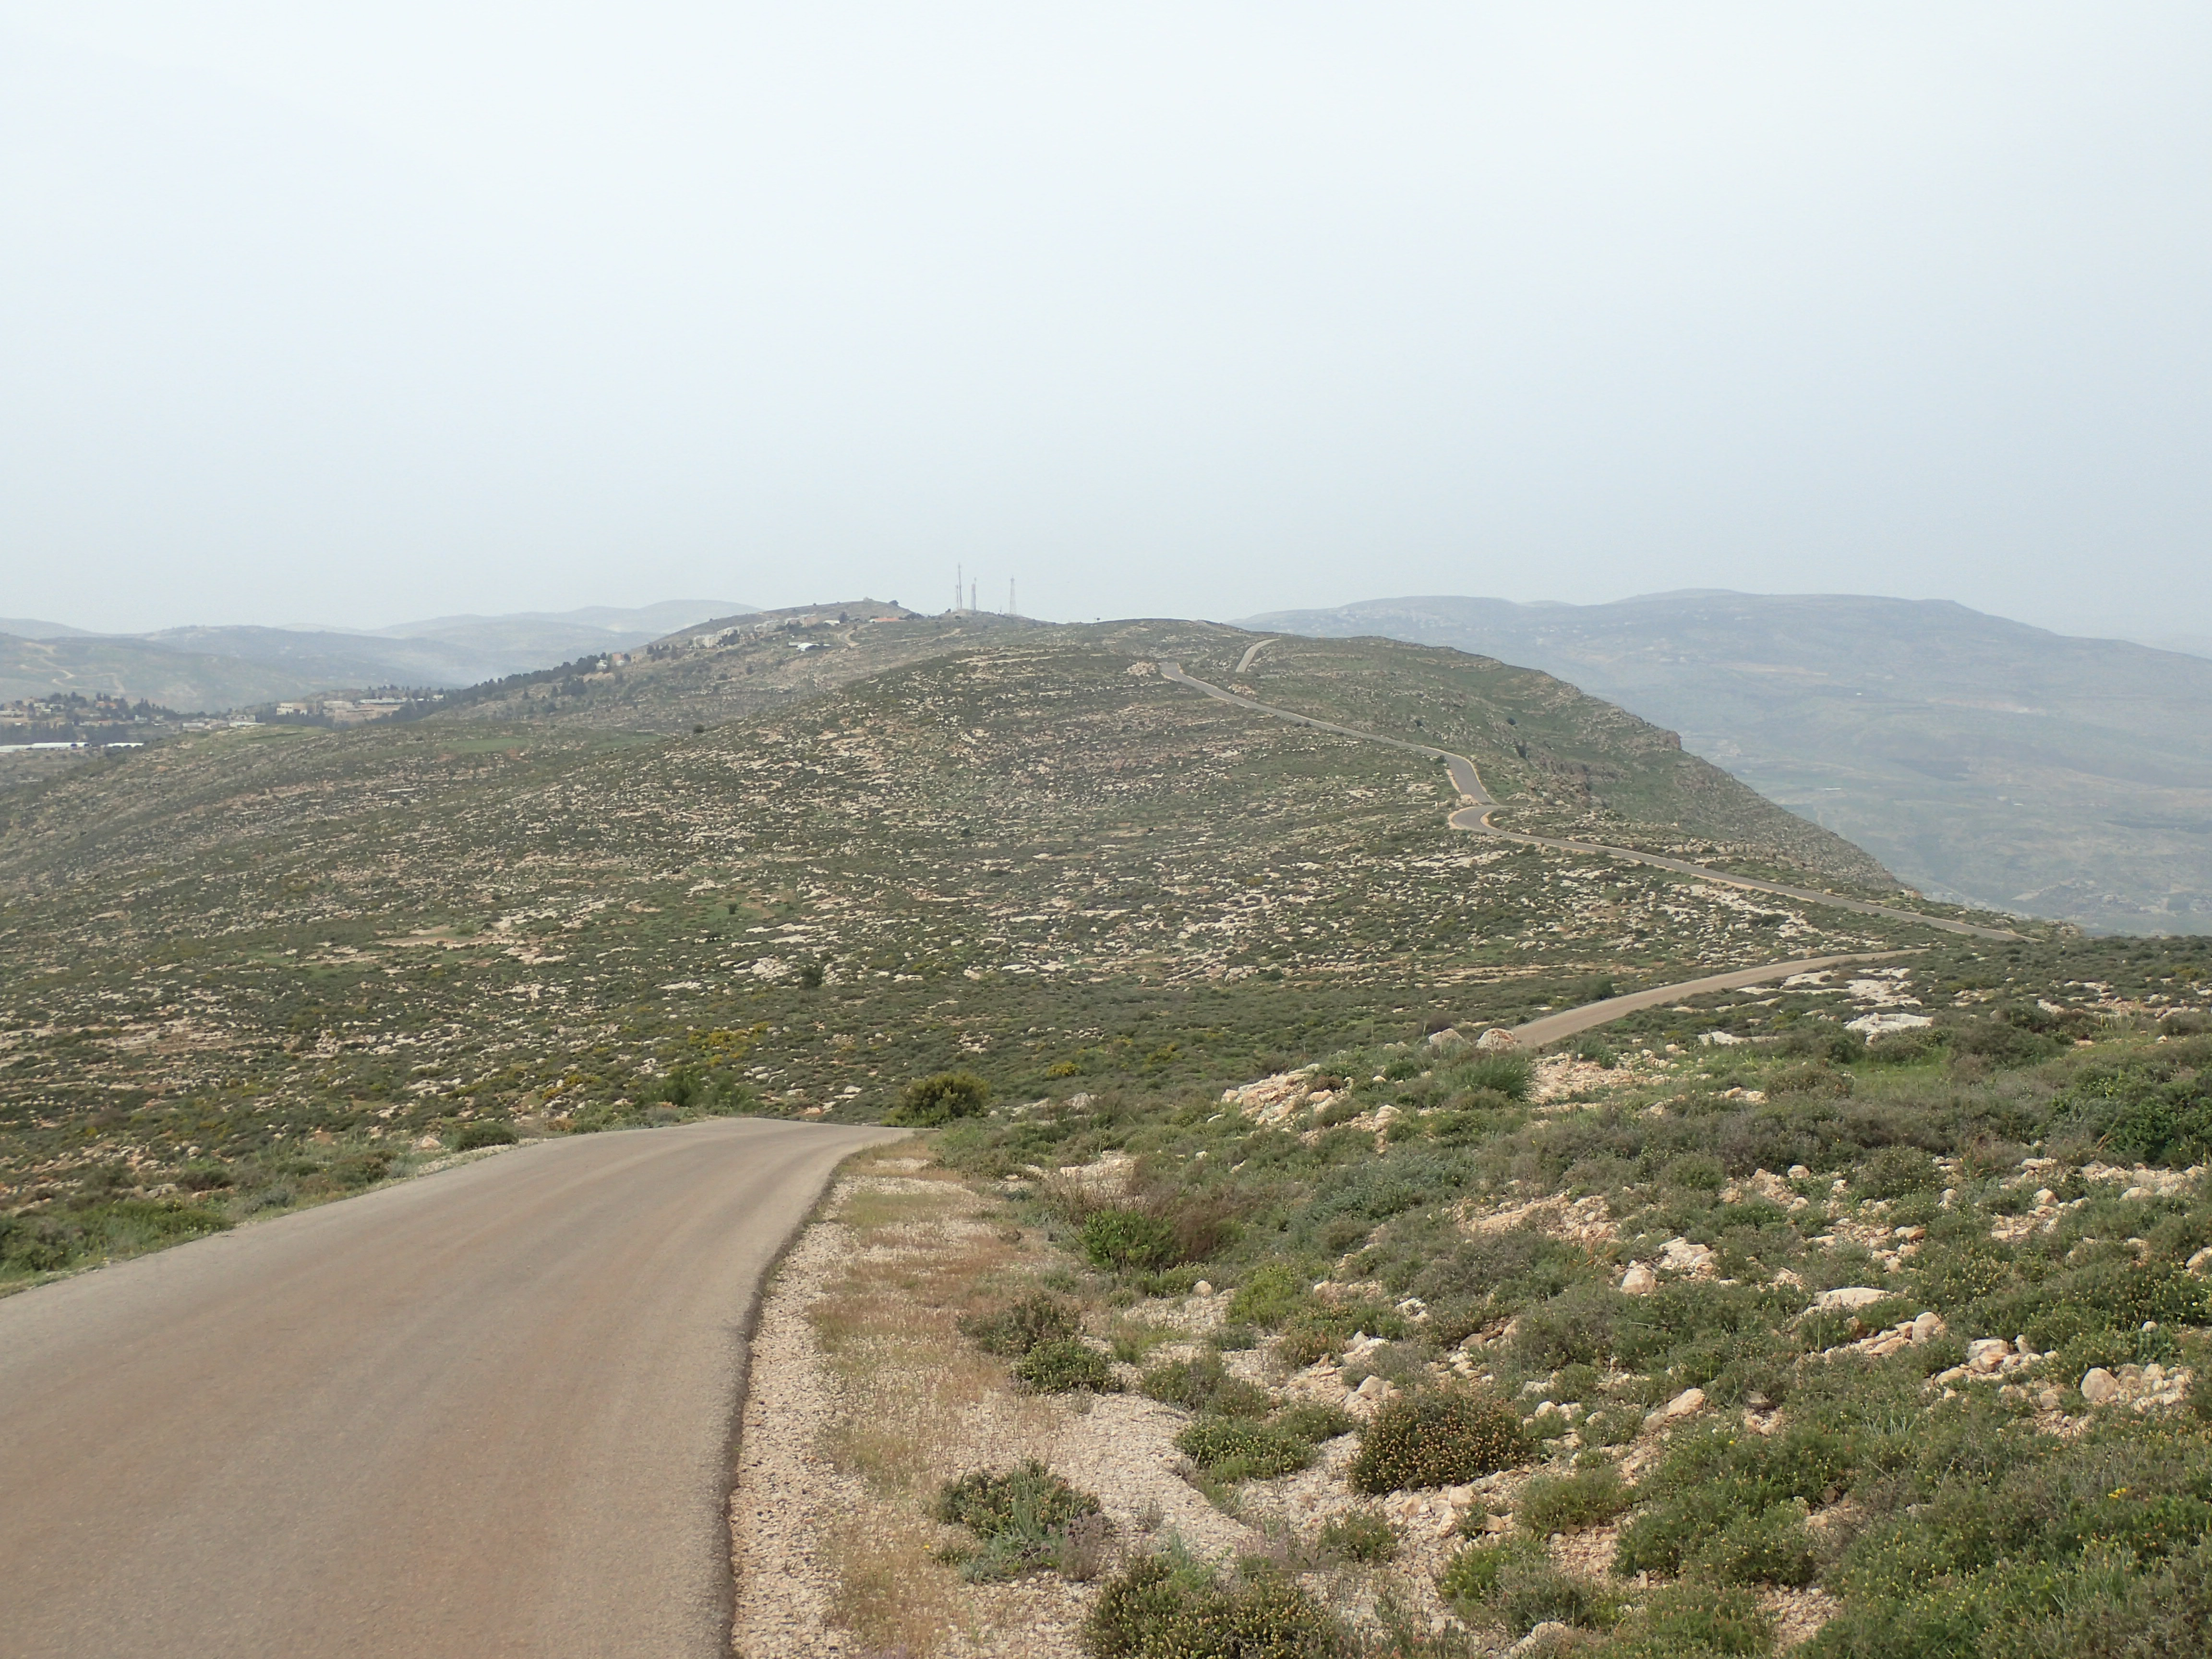 The ridgeline road between Itamar and Givat Ha'Arba'a in the West Bank.